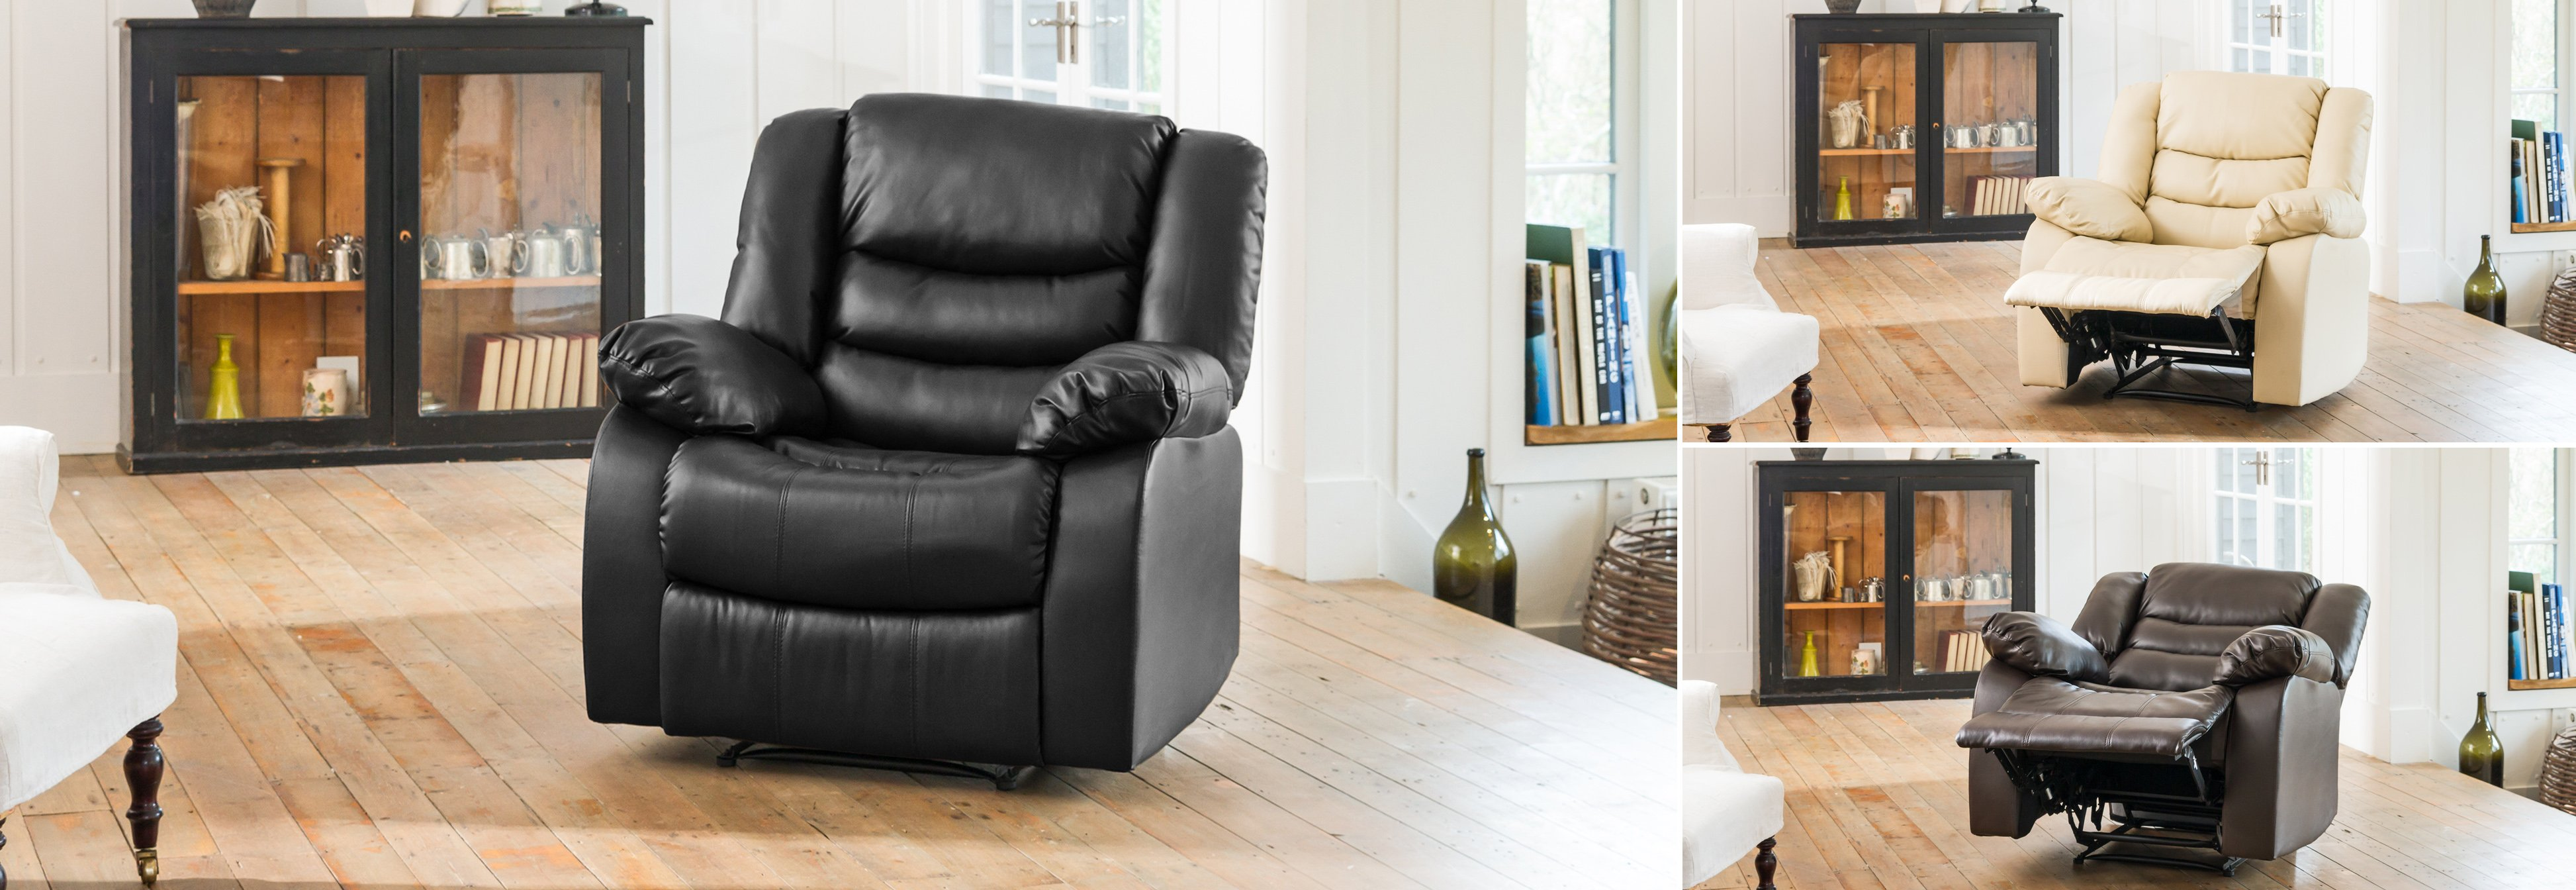 Seville Reclining Chair black